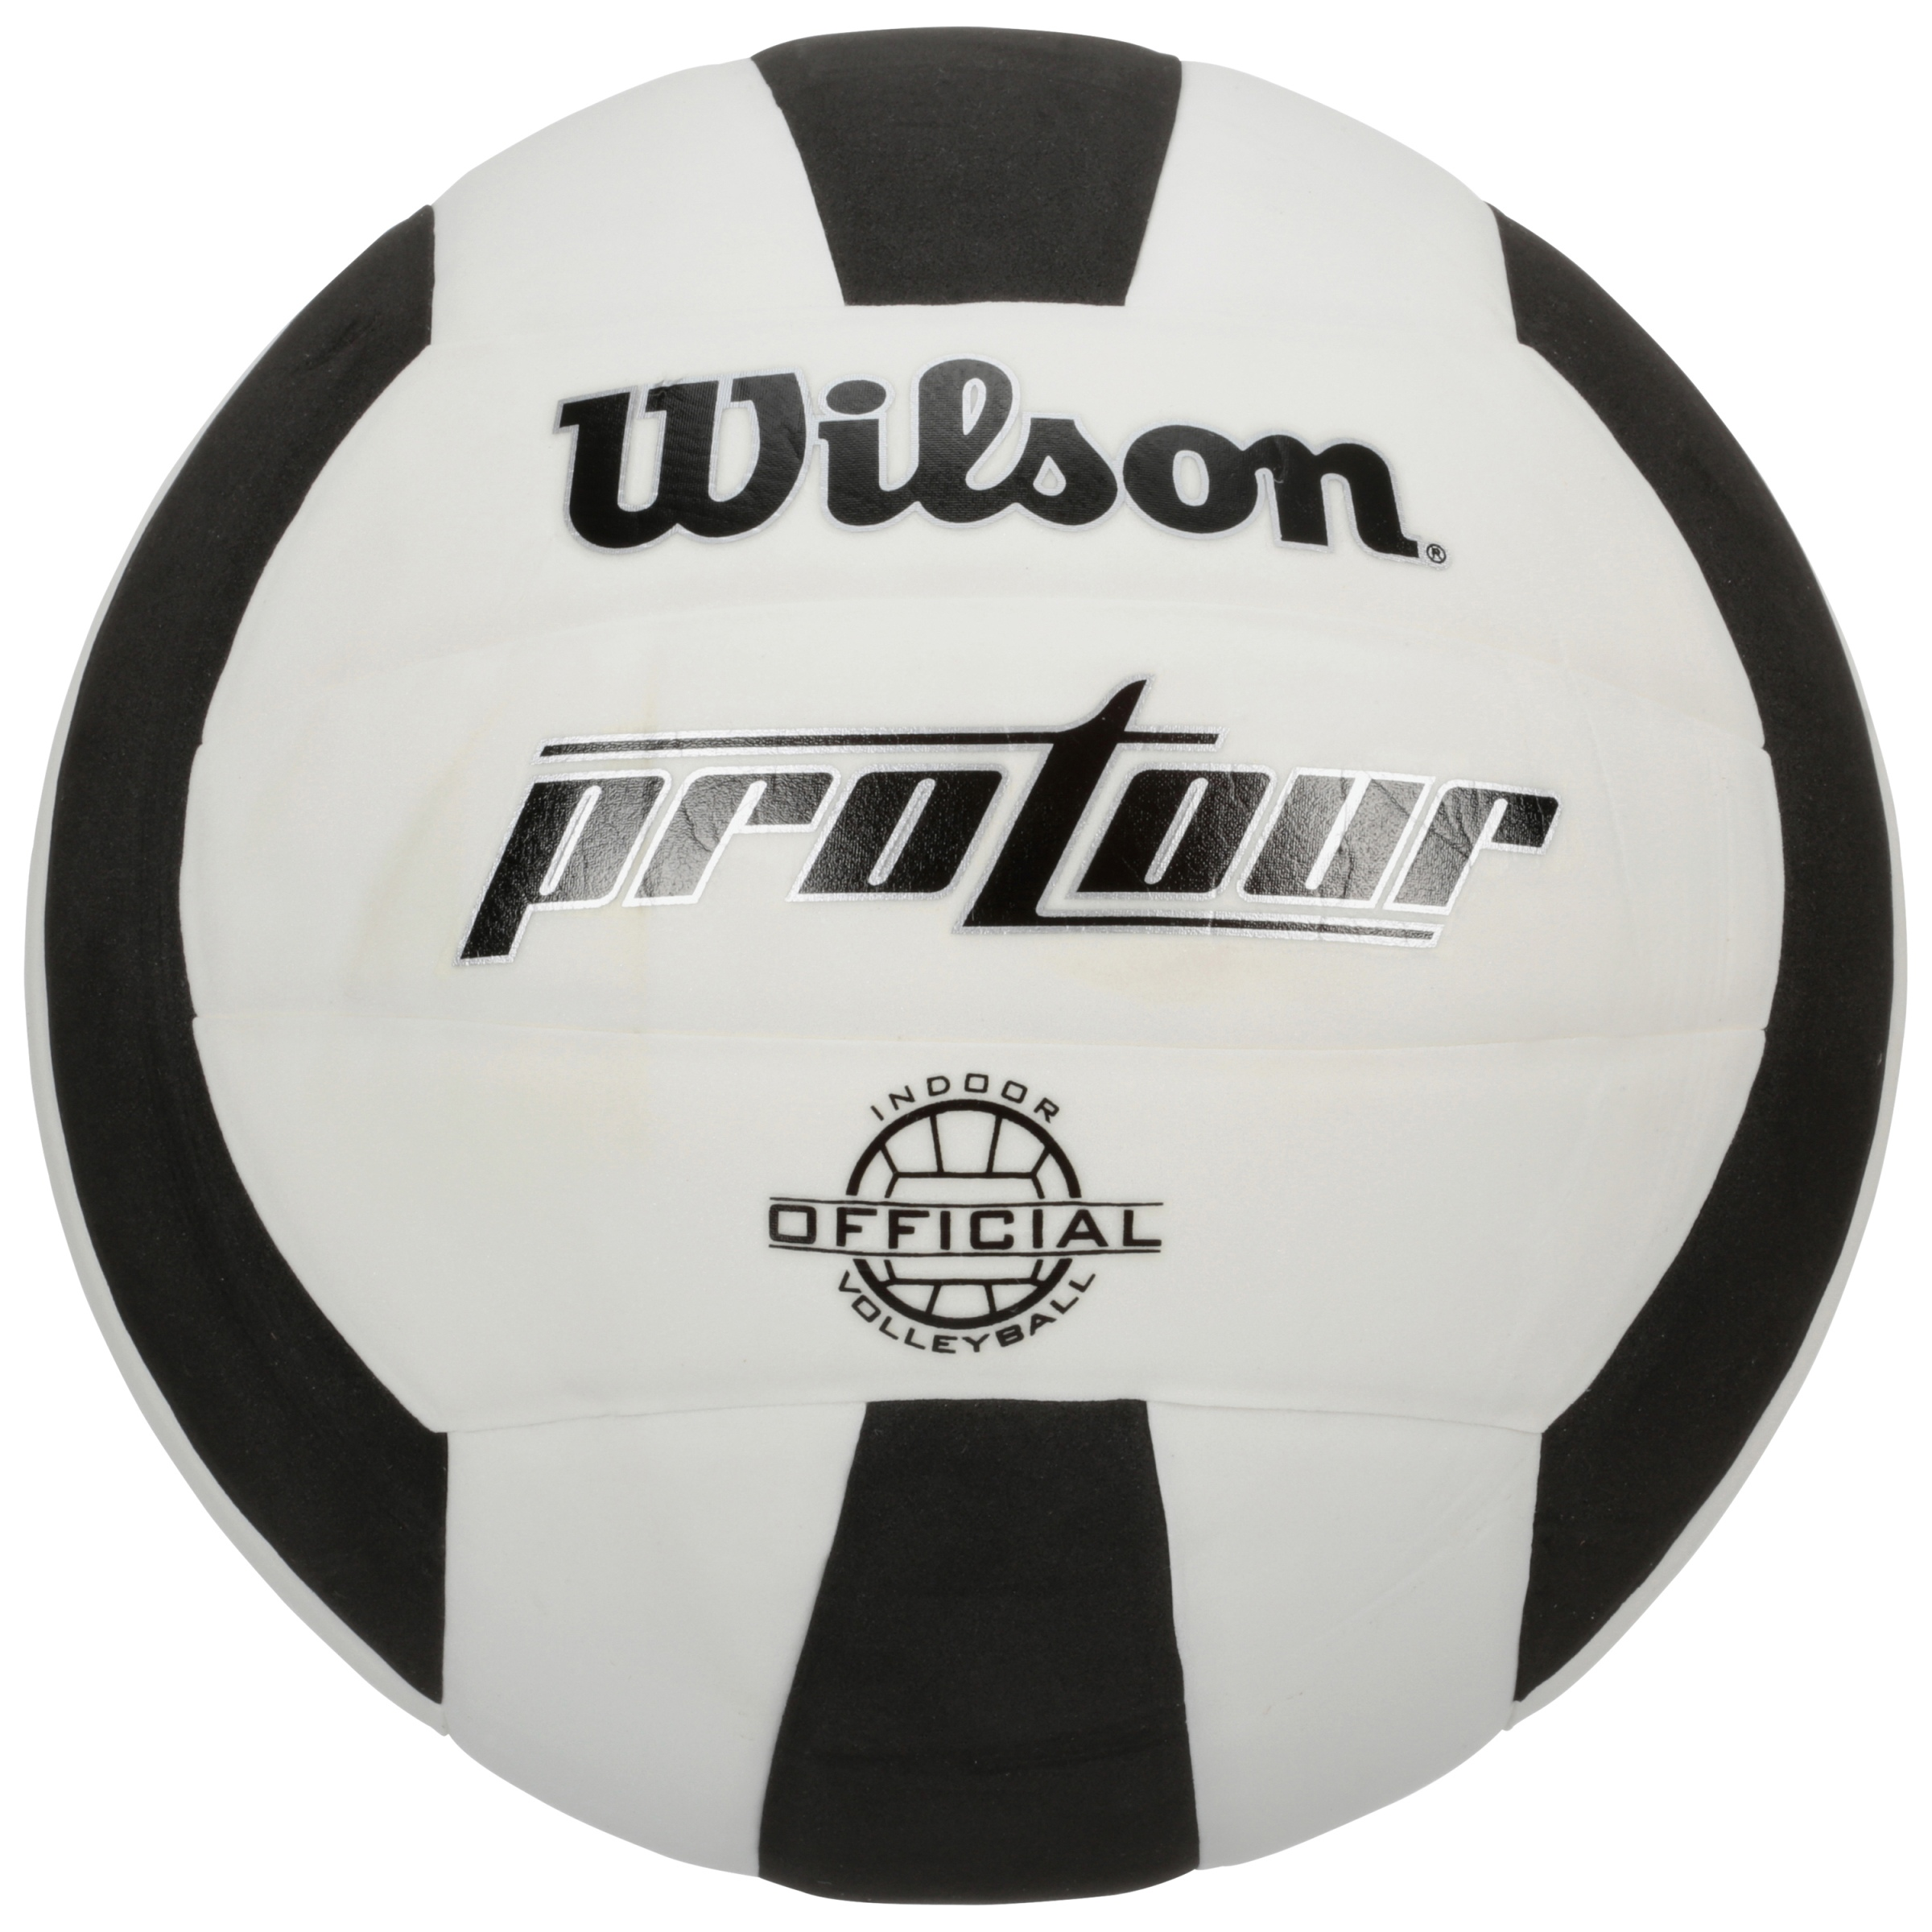 Wilson® ProTour Official Recreational Indoor Volleyball